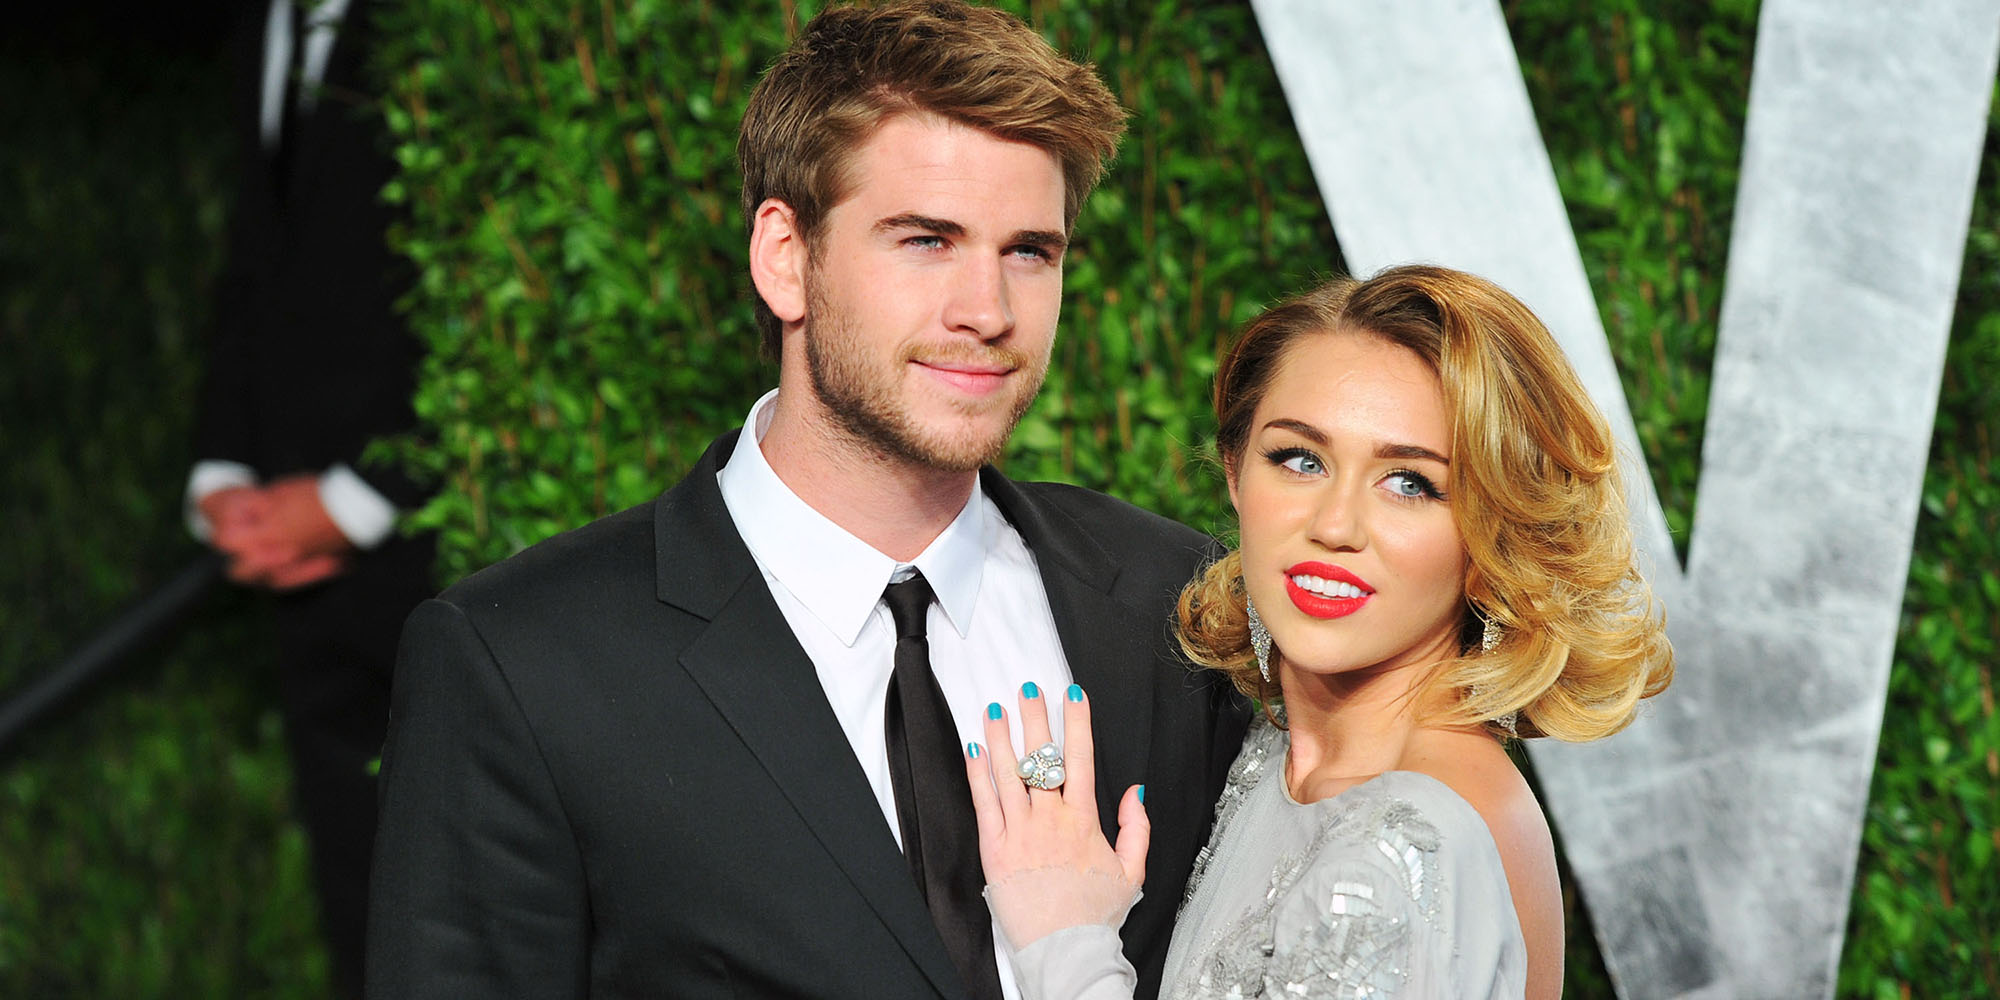 Miley Cyrus Long Lost Love Story: Opens Up About His Break Up With Liam Hemsworth